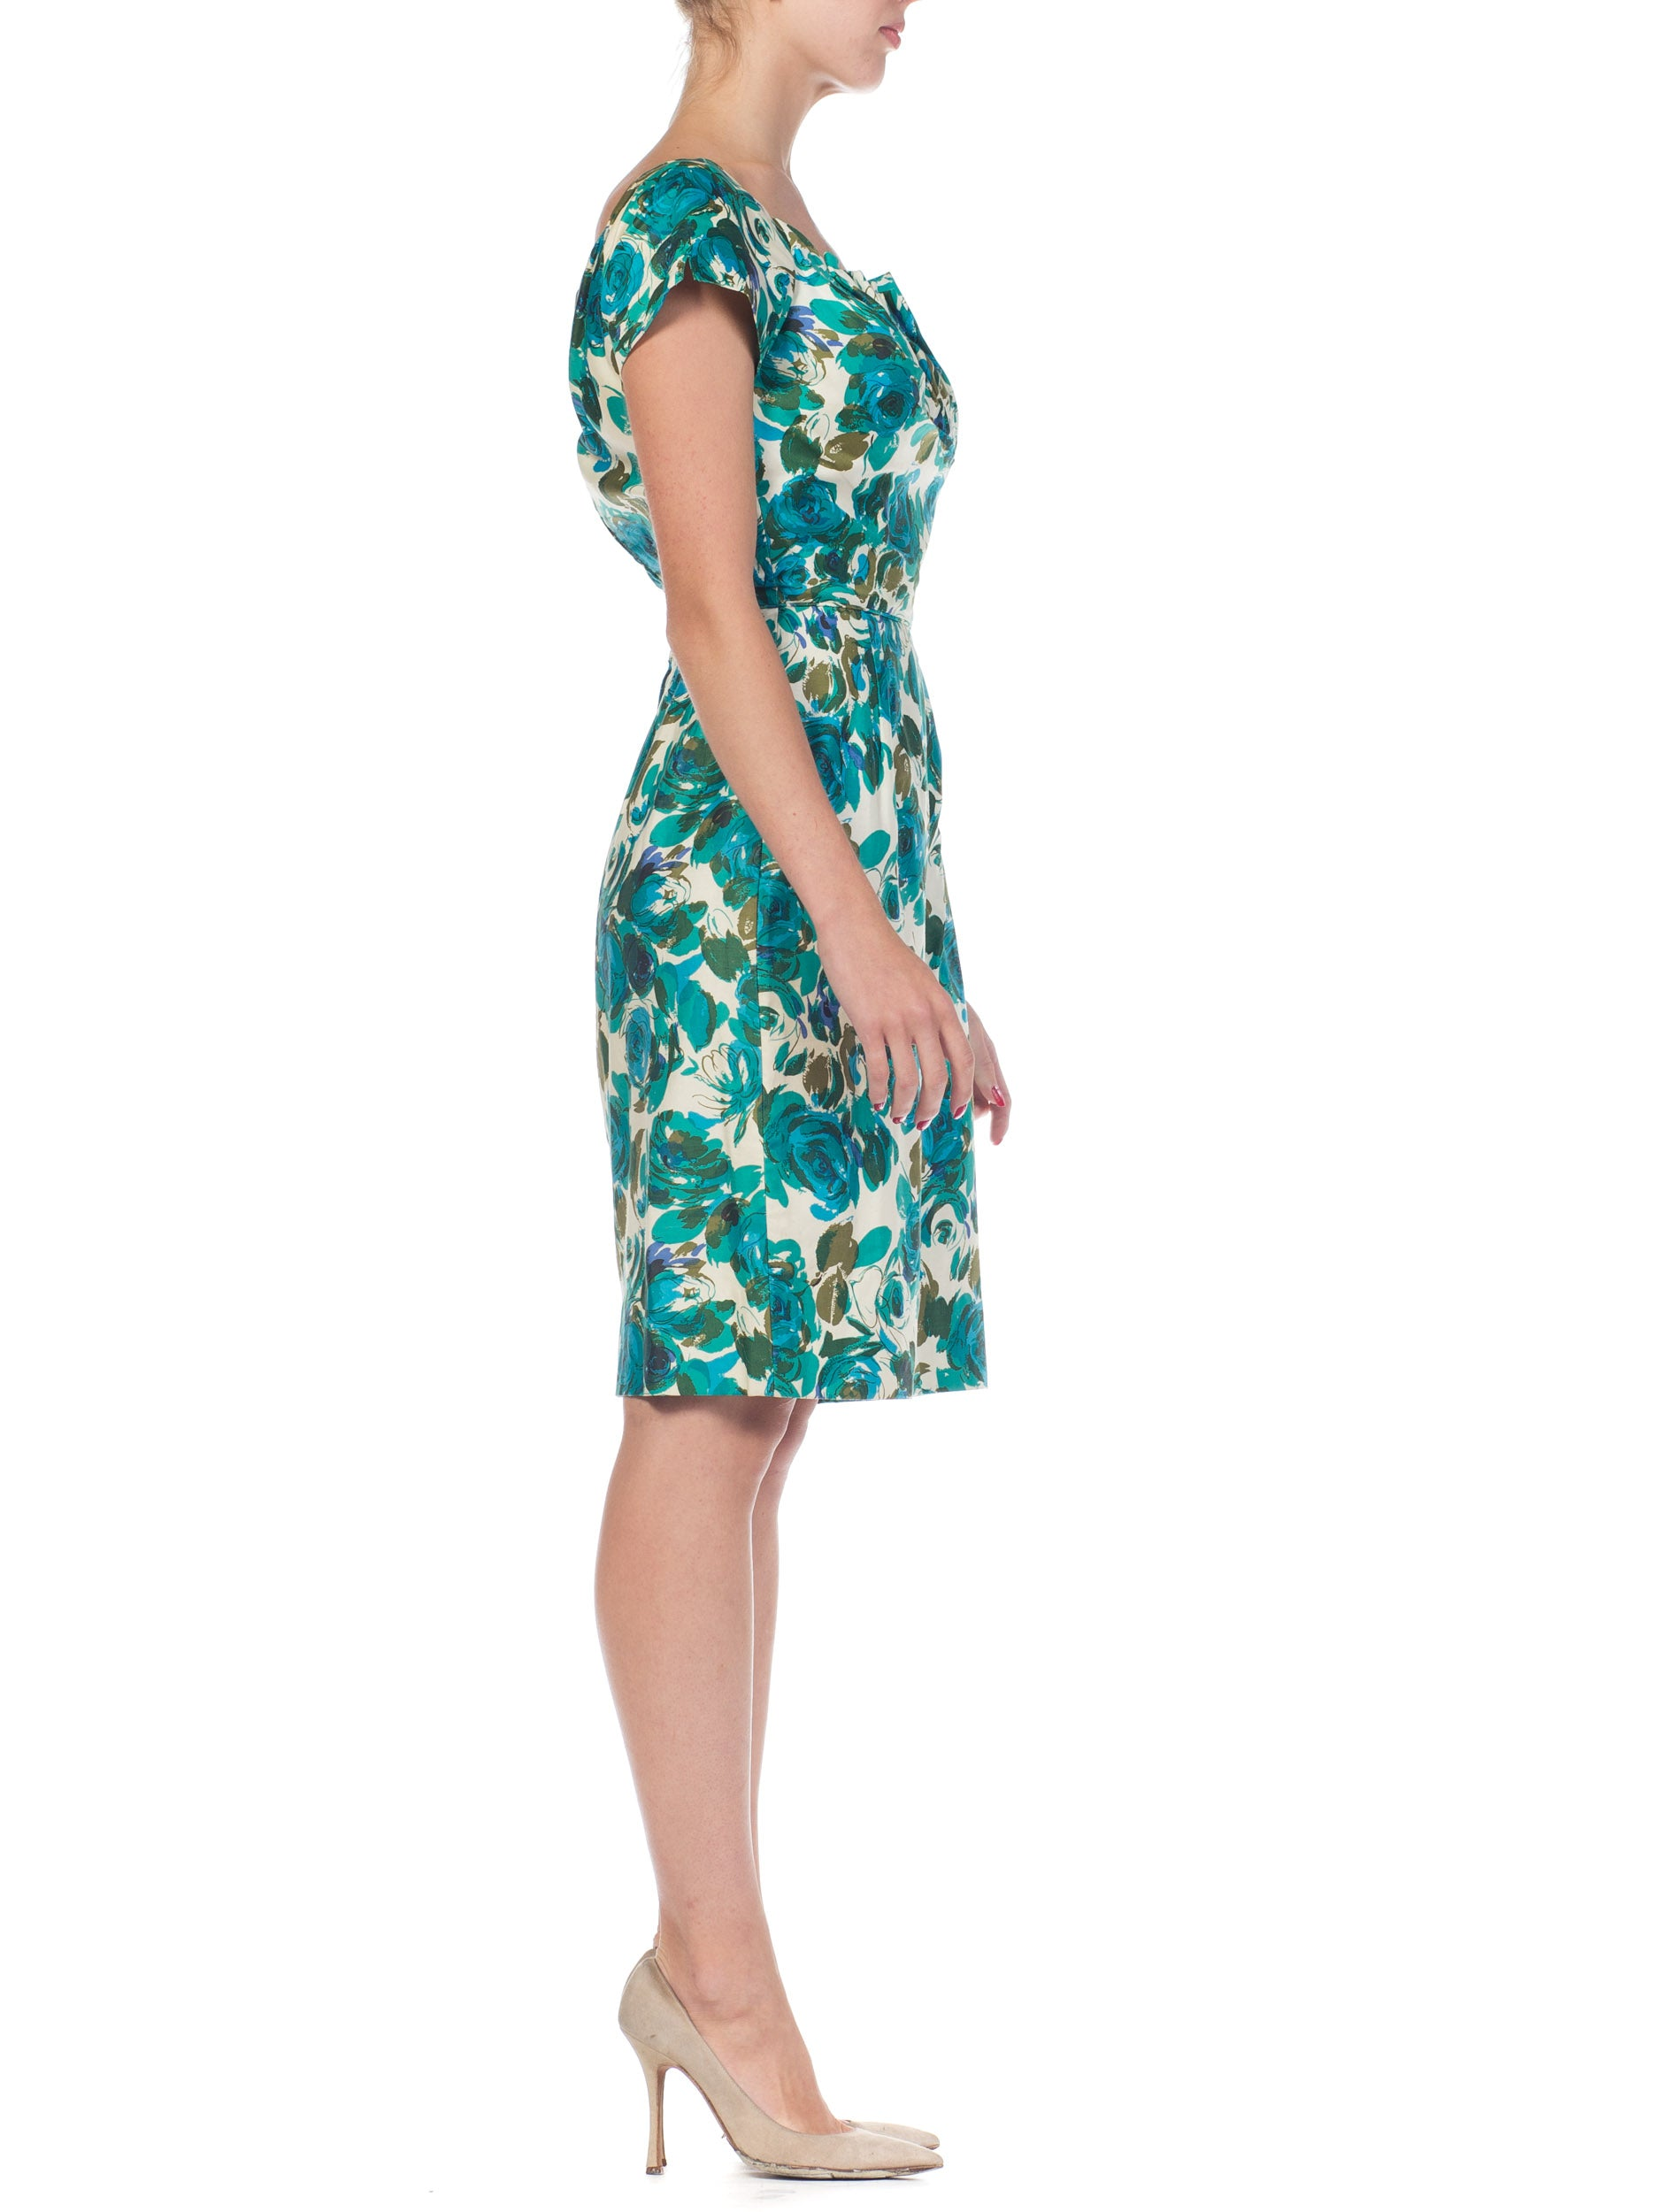 1950S Teal Floral Print Cotton Draped Bodice Dress With Cap Sleeves